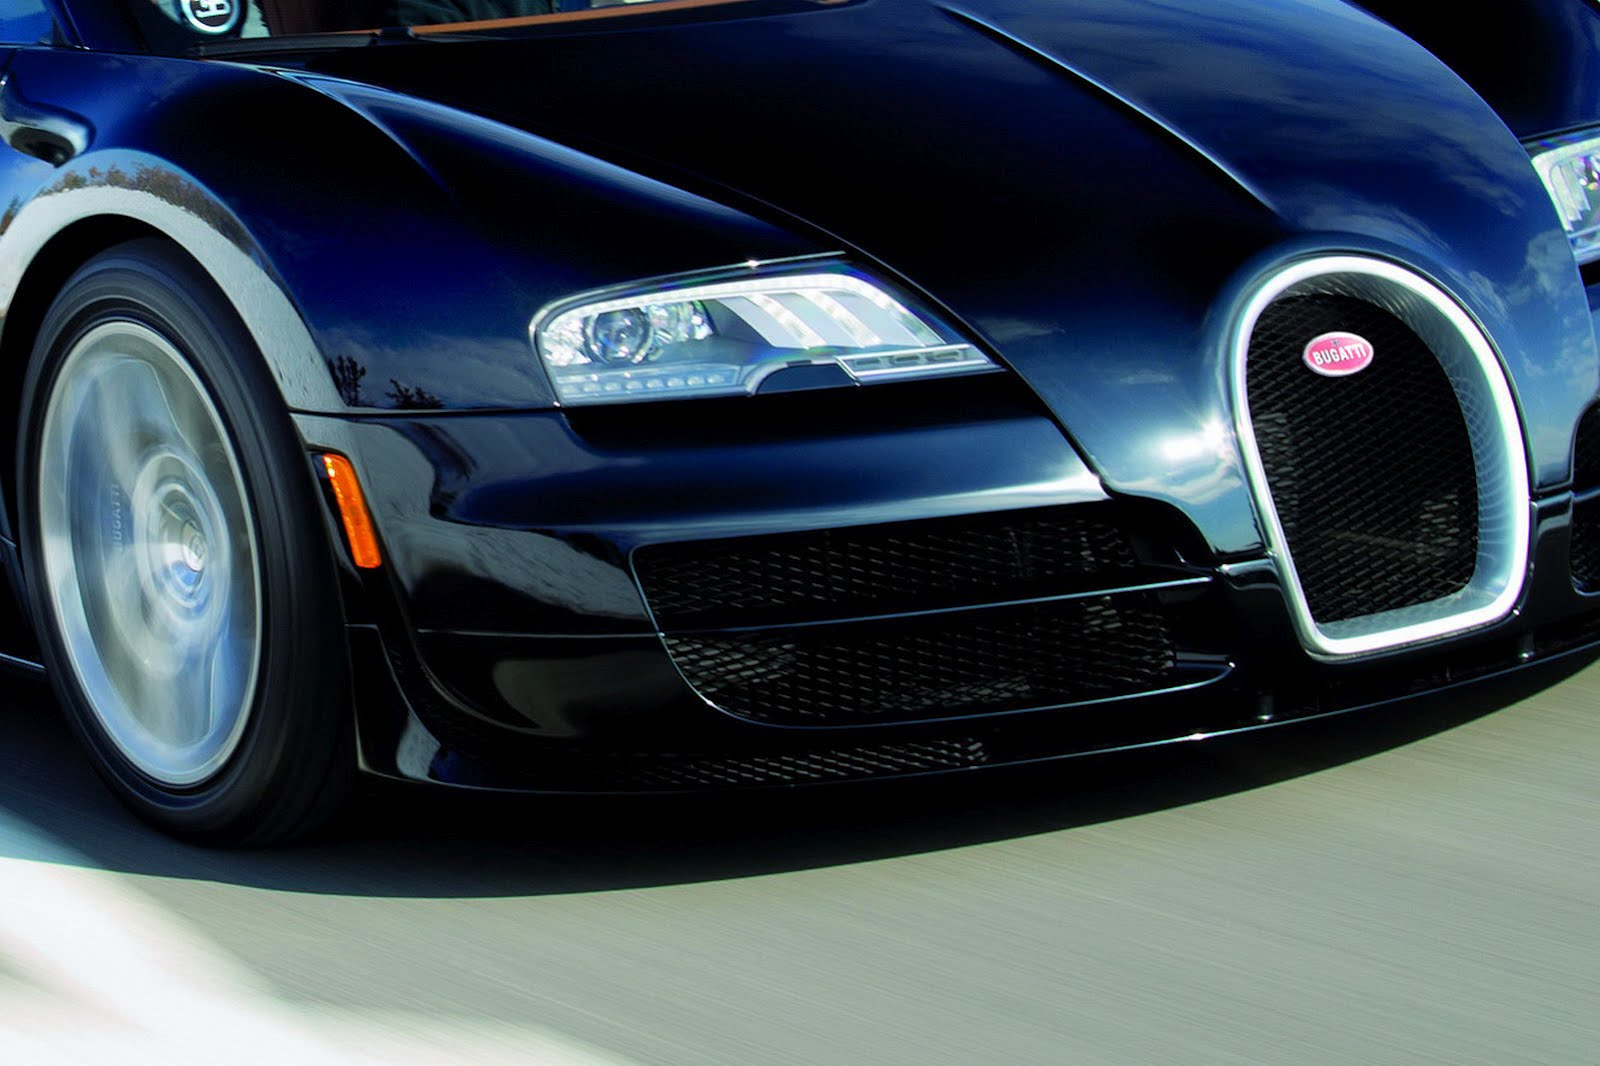 2012 bugatti veyron grand sport vitesse release world of car fans. Black Bedroom Furniture Sets. Home Design Ideas